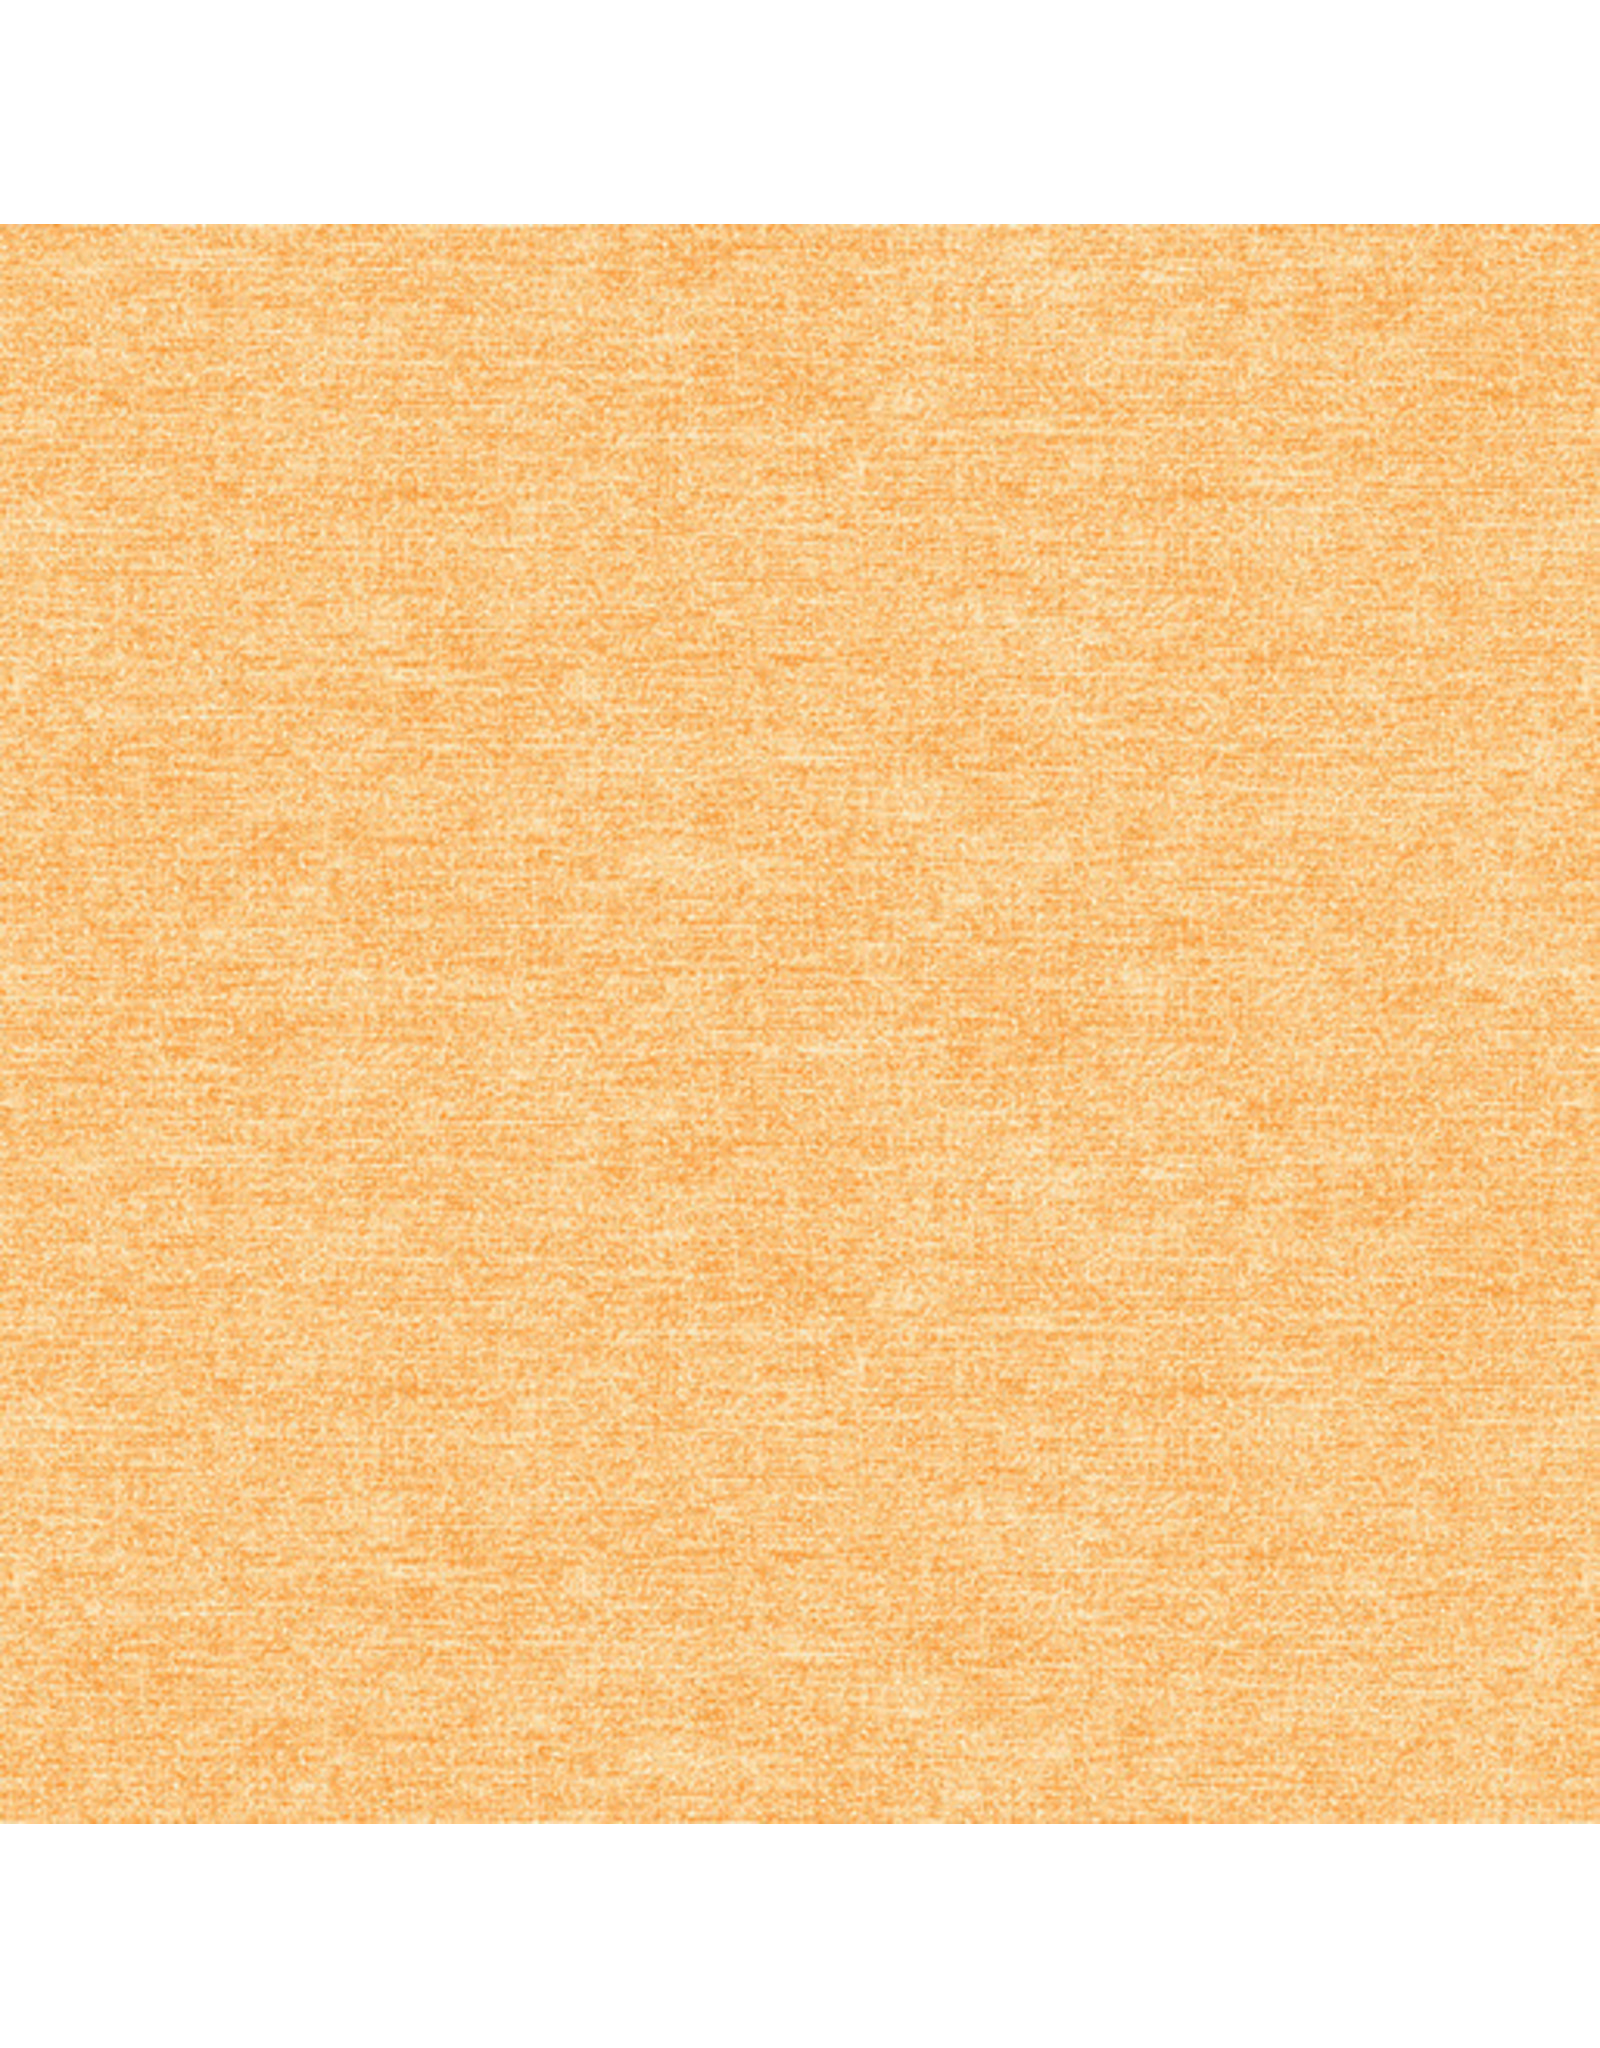 Contempo Nightingale - Cotton Shot Orange